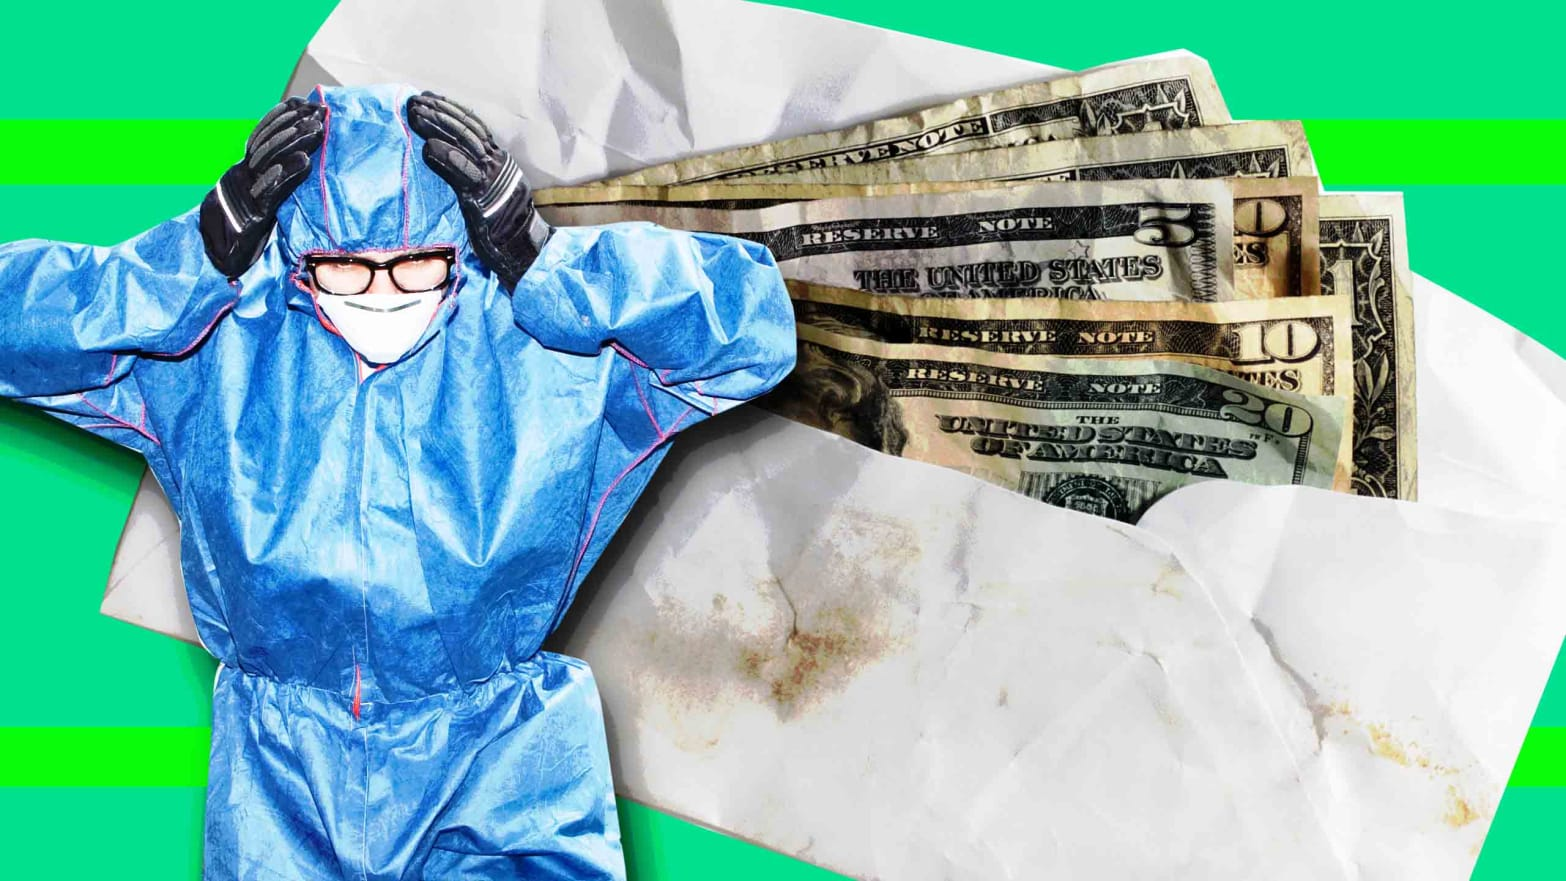 The DEA Is Worried Sick About Touching Contaminated Drug Money